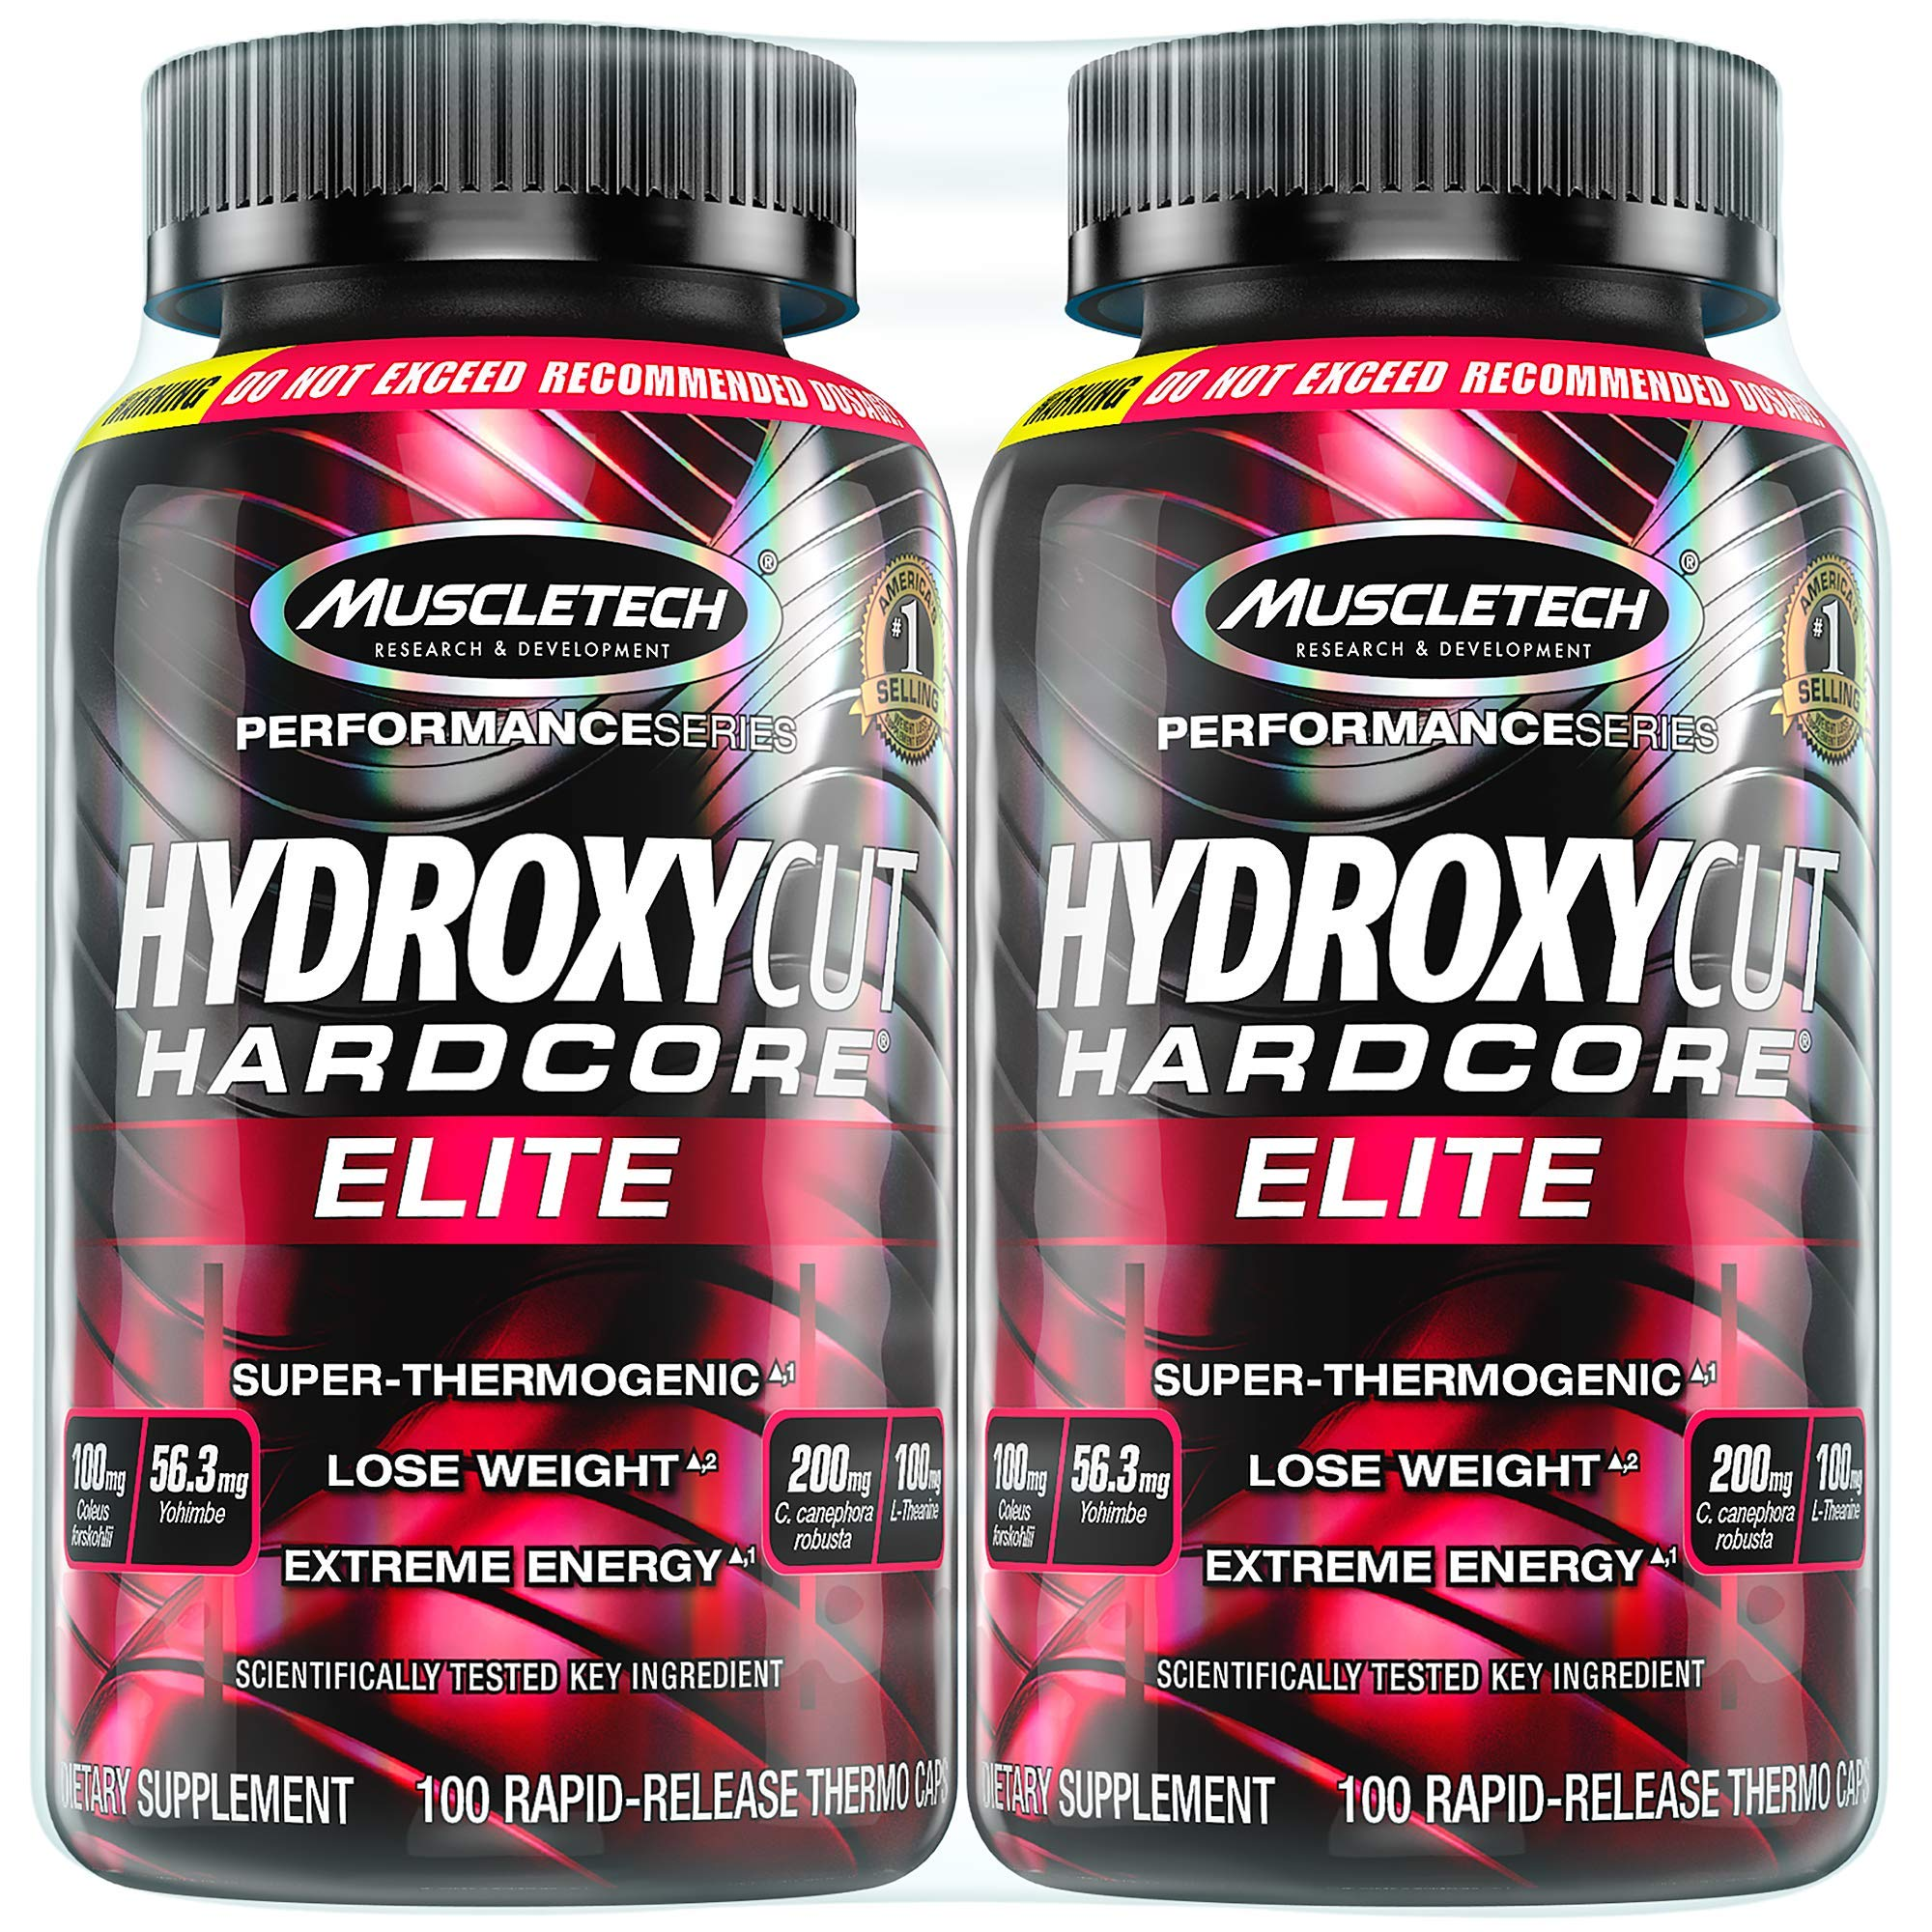 Hydroxycut Hardcore Elite Weight Loss Supplement, Designed for Hardcore Weight Loss, Energy & Enhanced Focus, 100 Servings (200 Pills) by Hydroxycut